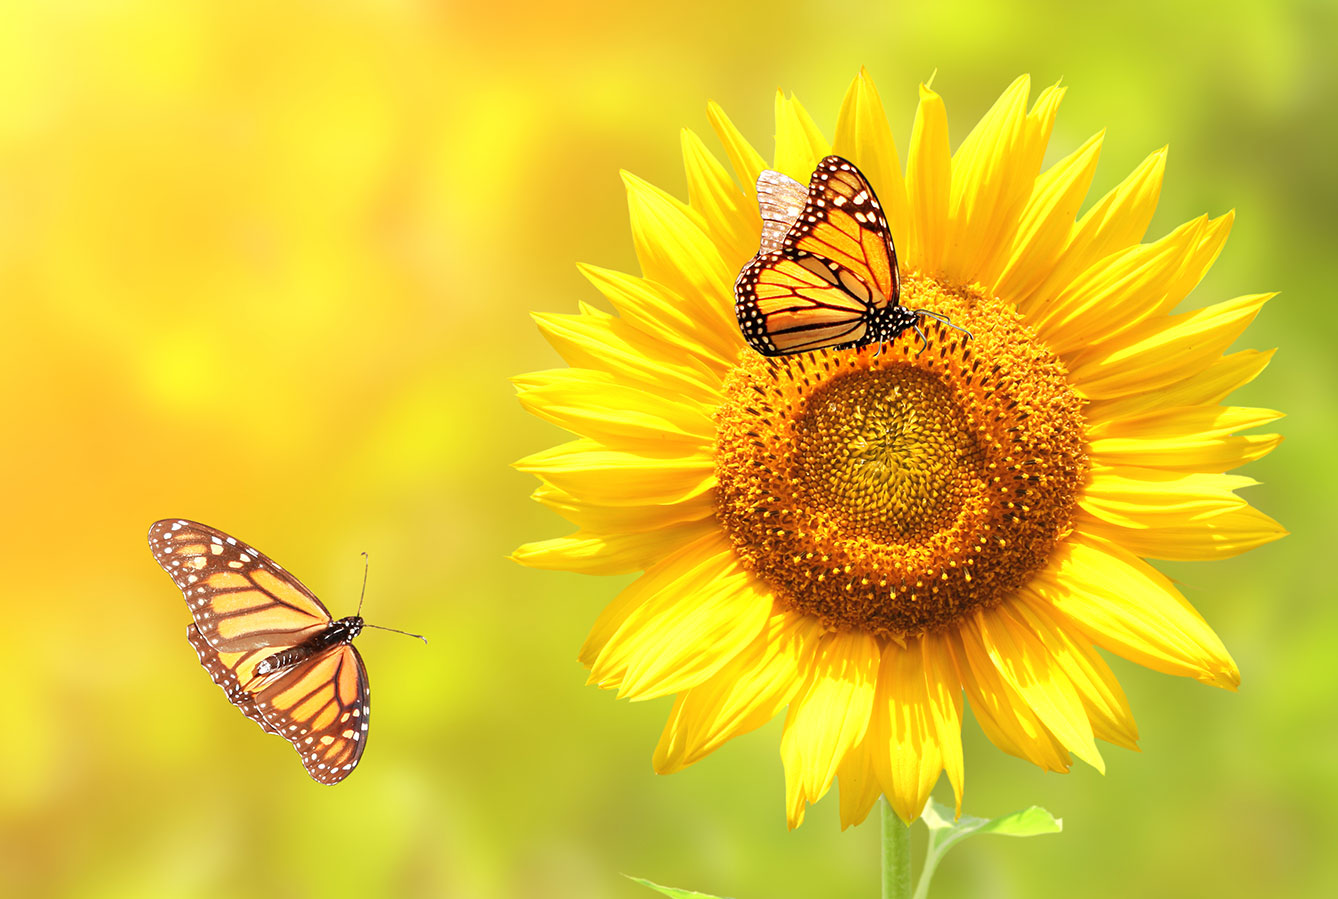 Monarch butterflies and sunflower